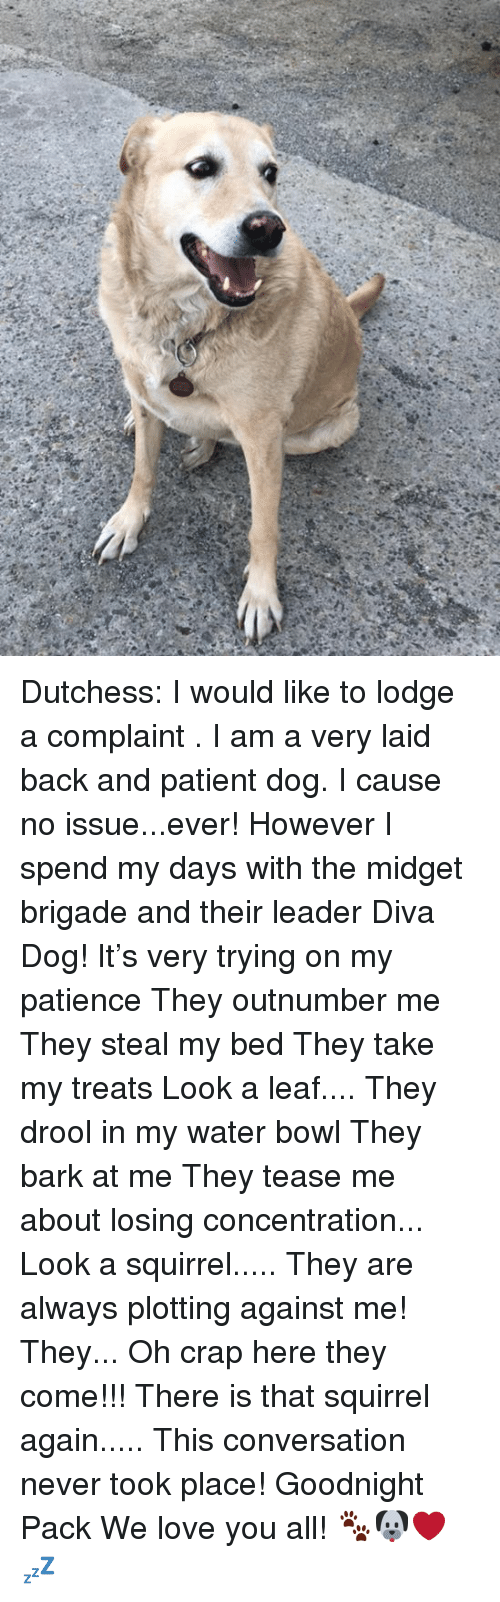 Love, Memes, and Patience: Dutchess: I would like to lodge a complaint . I am a very laid back and patient dog. I cause no issue...ever! However I spend my days with the midget brigade and their leader Diva Dog! It's very trying on my patience  They outnumber me They steal my bed They take my treats Look a leaf.... They drool in my water bowl They bark at me They tease me about losing concentration... Look a squirrel..... They are always plotting against me!  They... Oh crap here they come!!! There is that squirrel again..... This conversation never took place!  Goodnight Pack  We love you all! 🐾🐶❤️💤